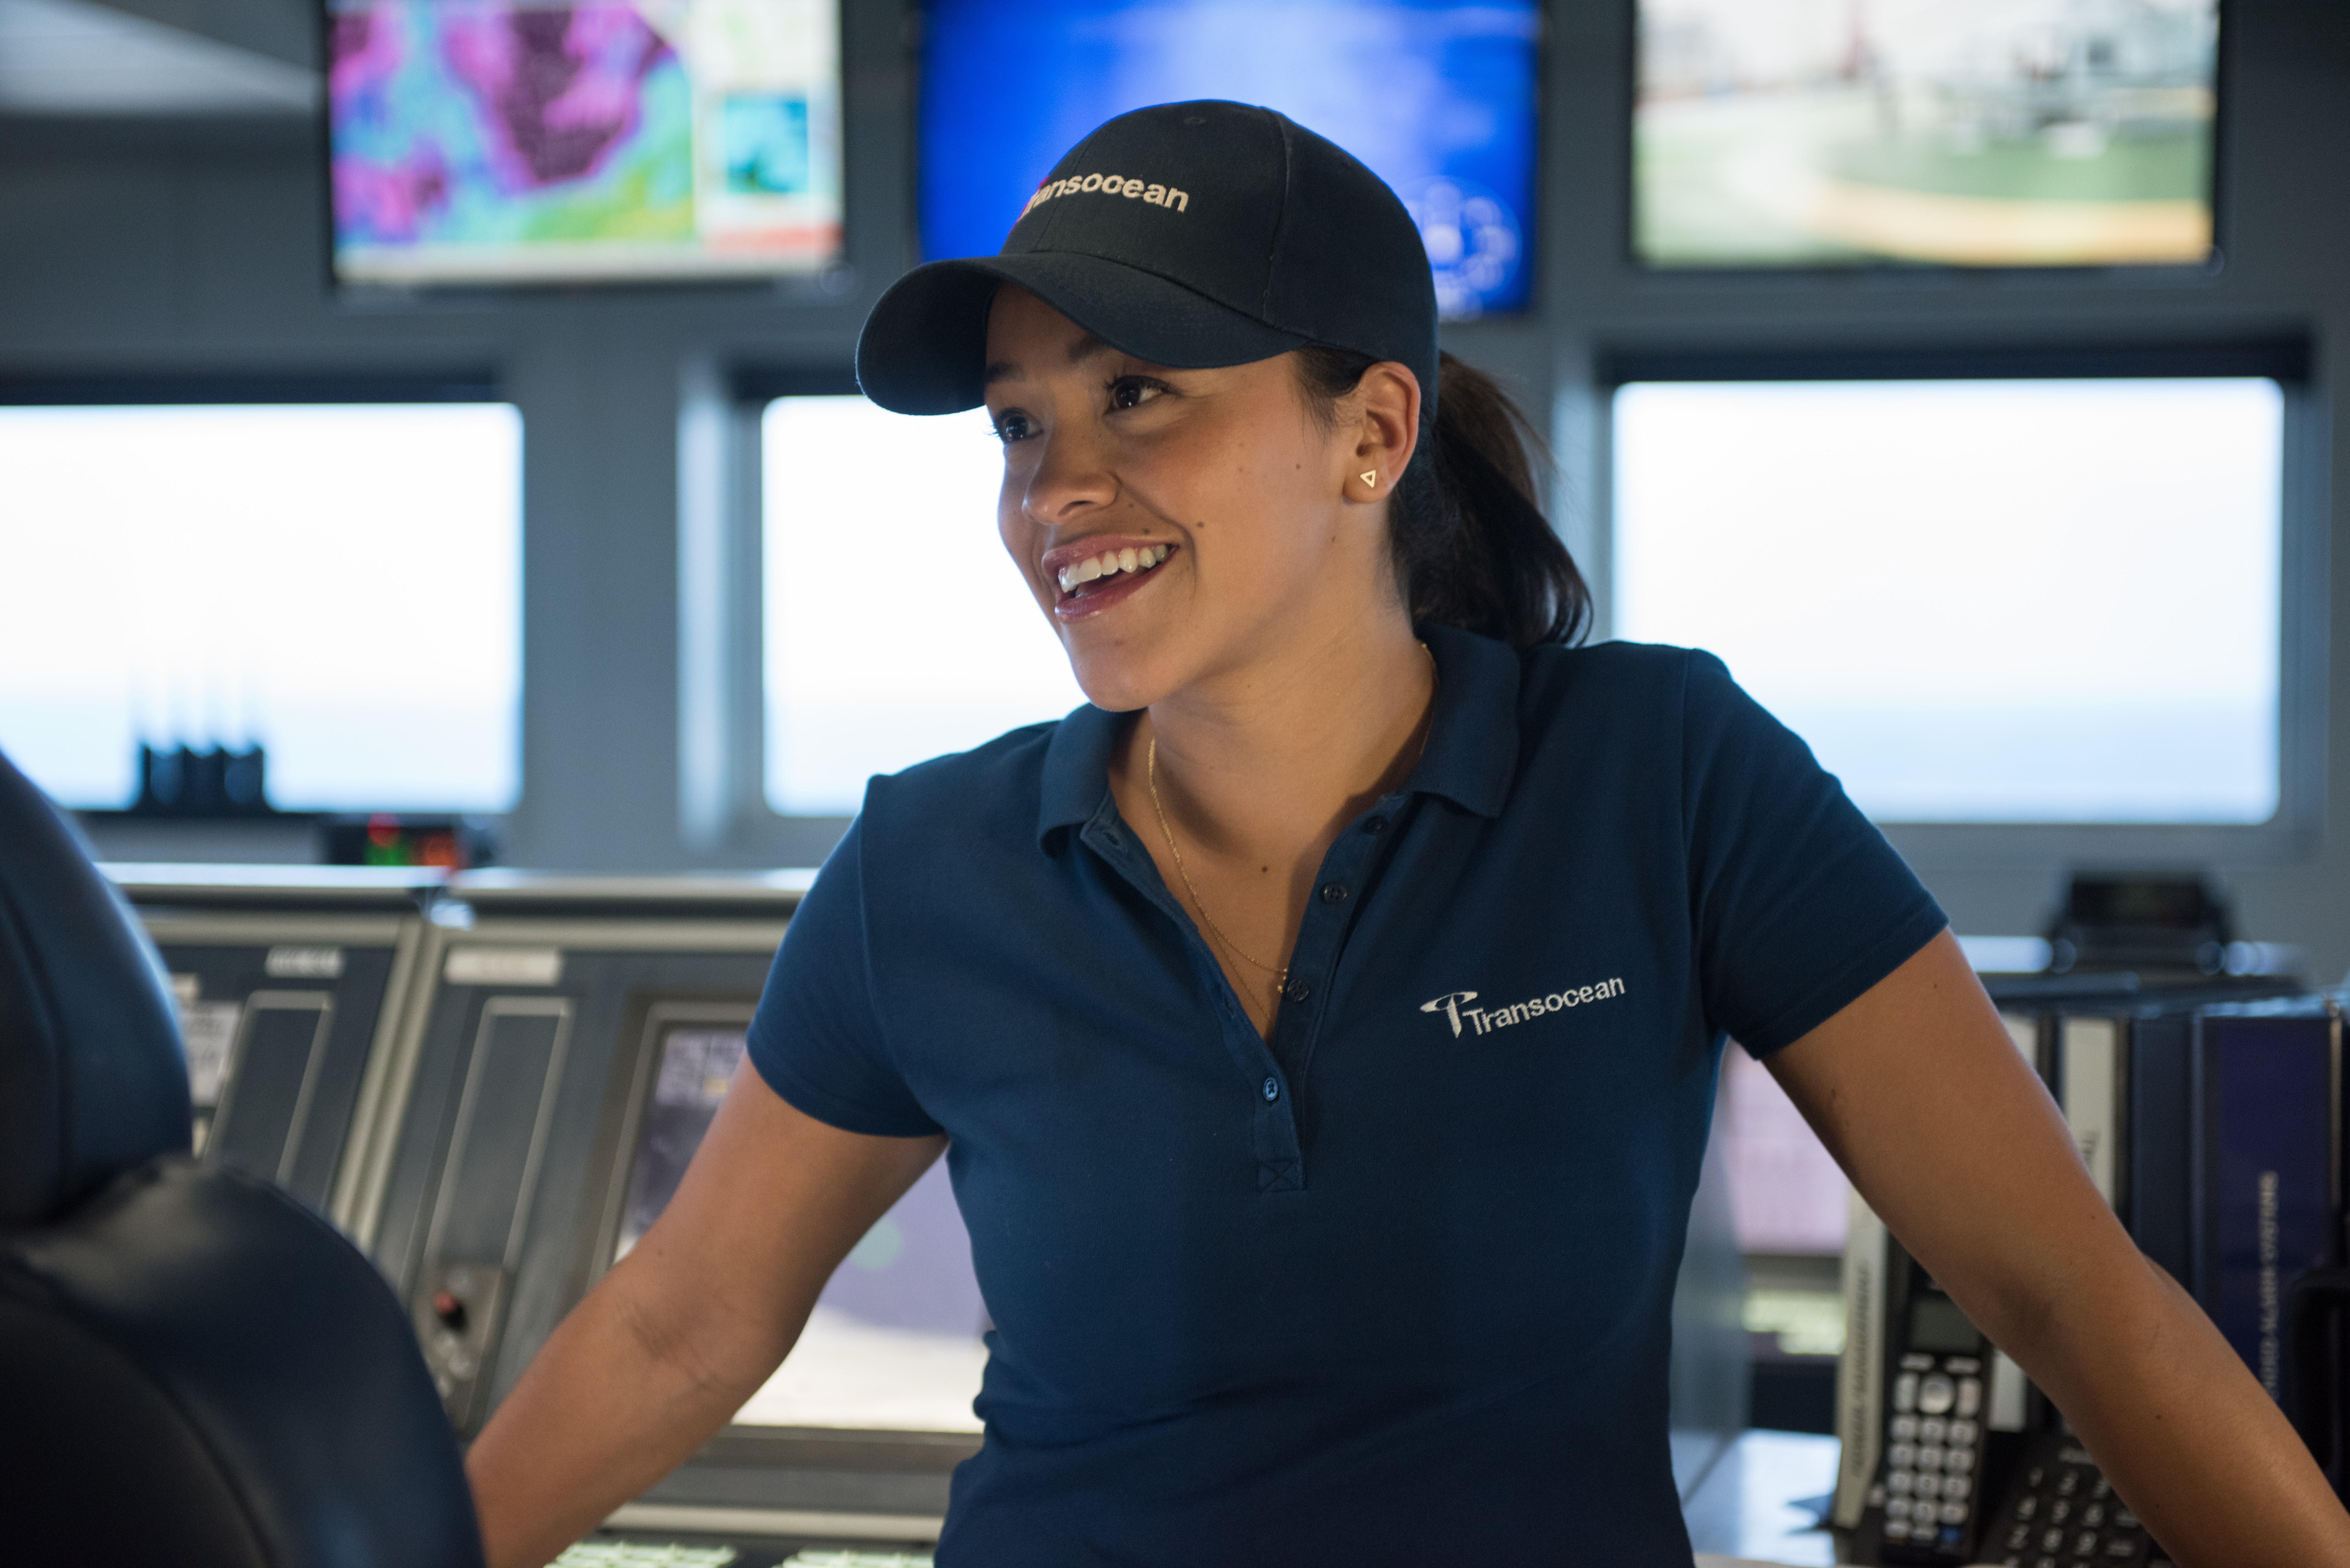 Porn Star Gina Rodriguez Great deepwater horizon is a great disaster movie. it's also a warning